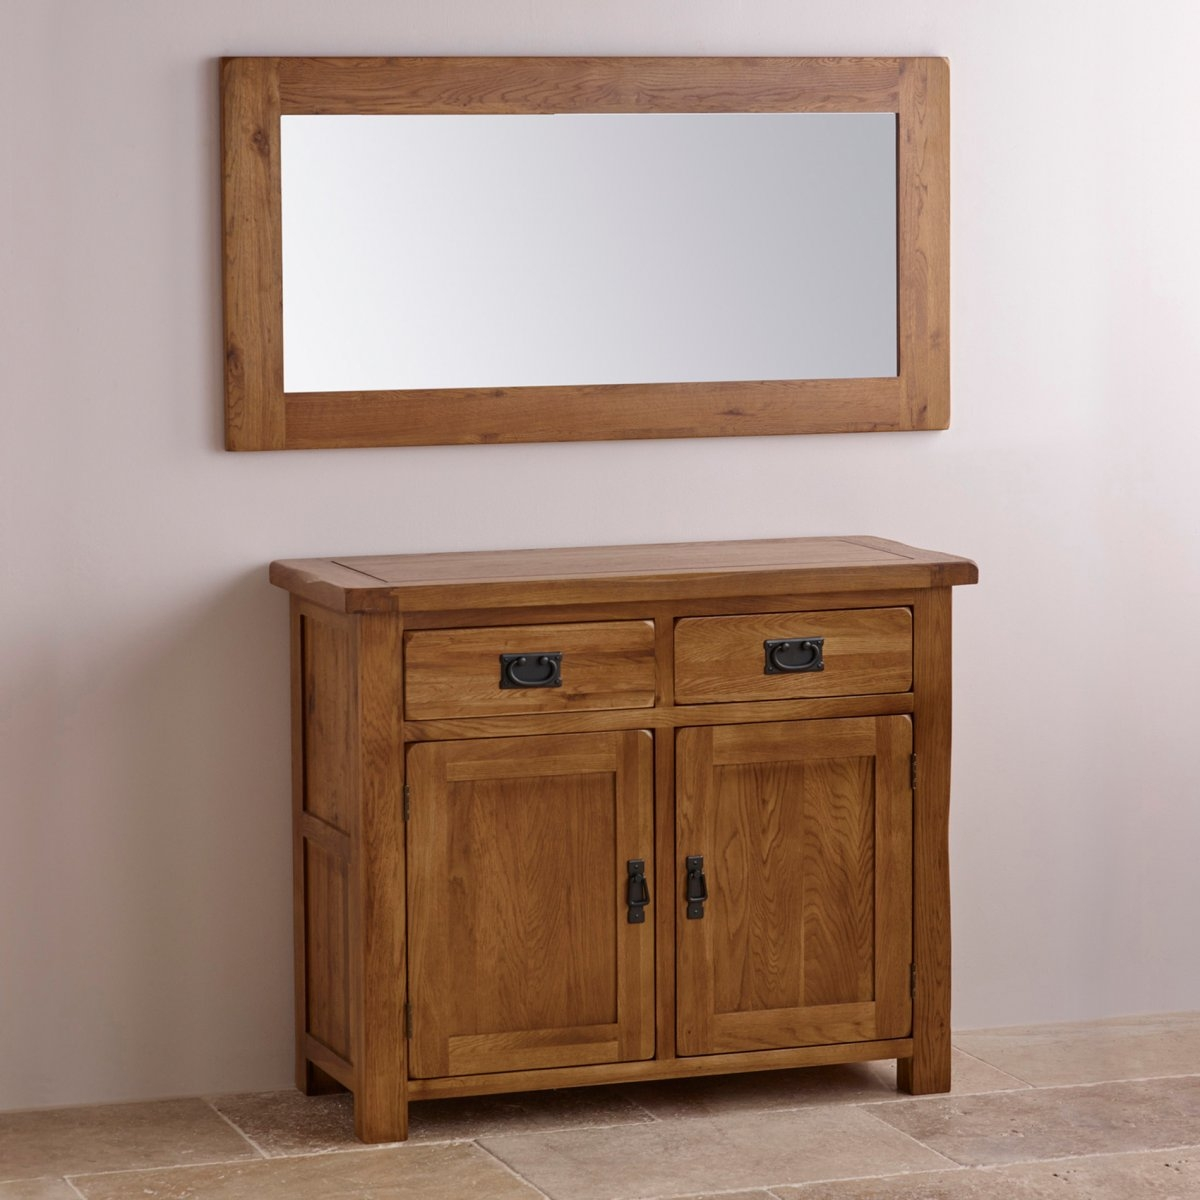 Original Rustic Wall Mirror In Solid Oak Oak Furniture Land In Rustic Oak Mirror (Image 10 of 15)